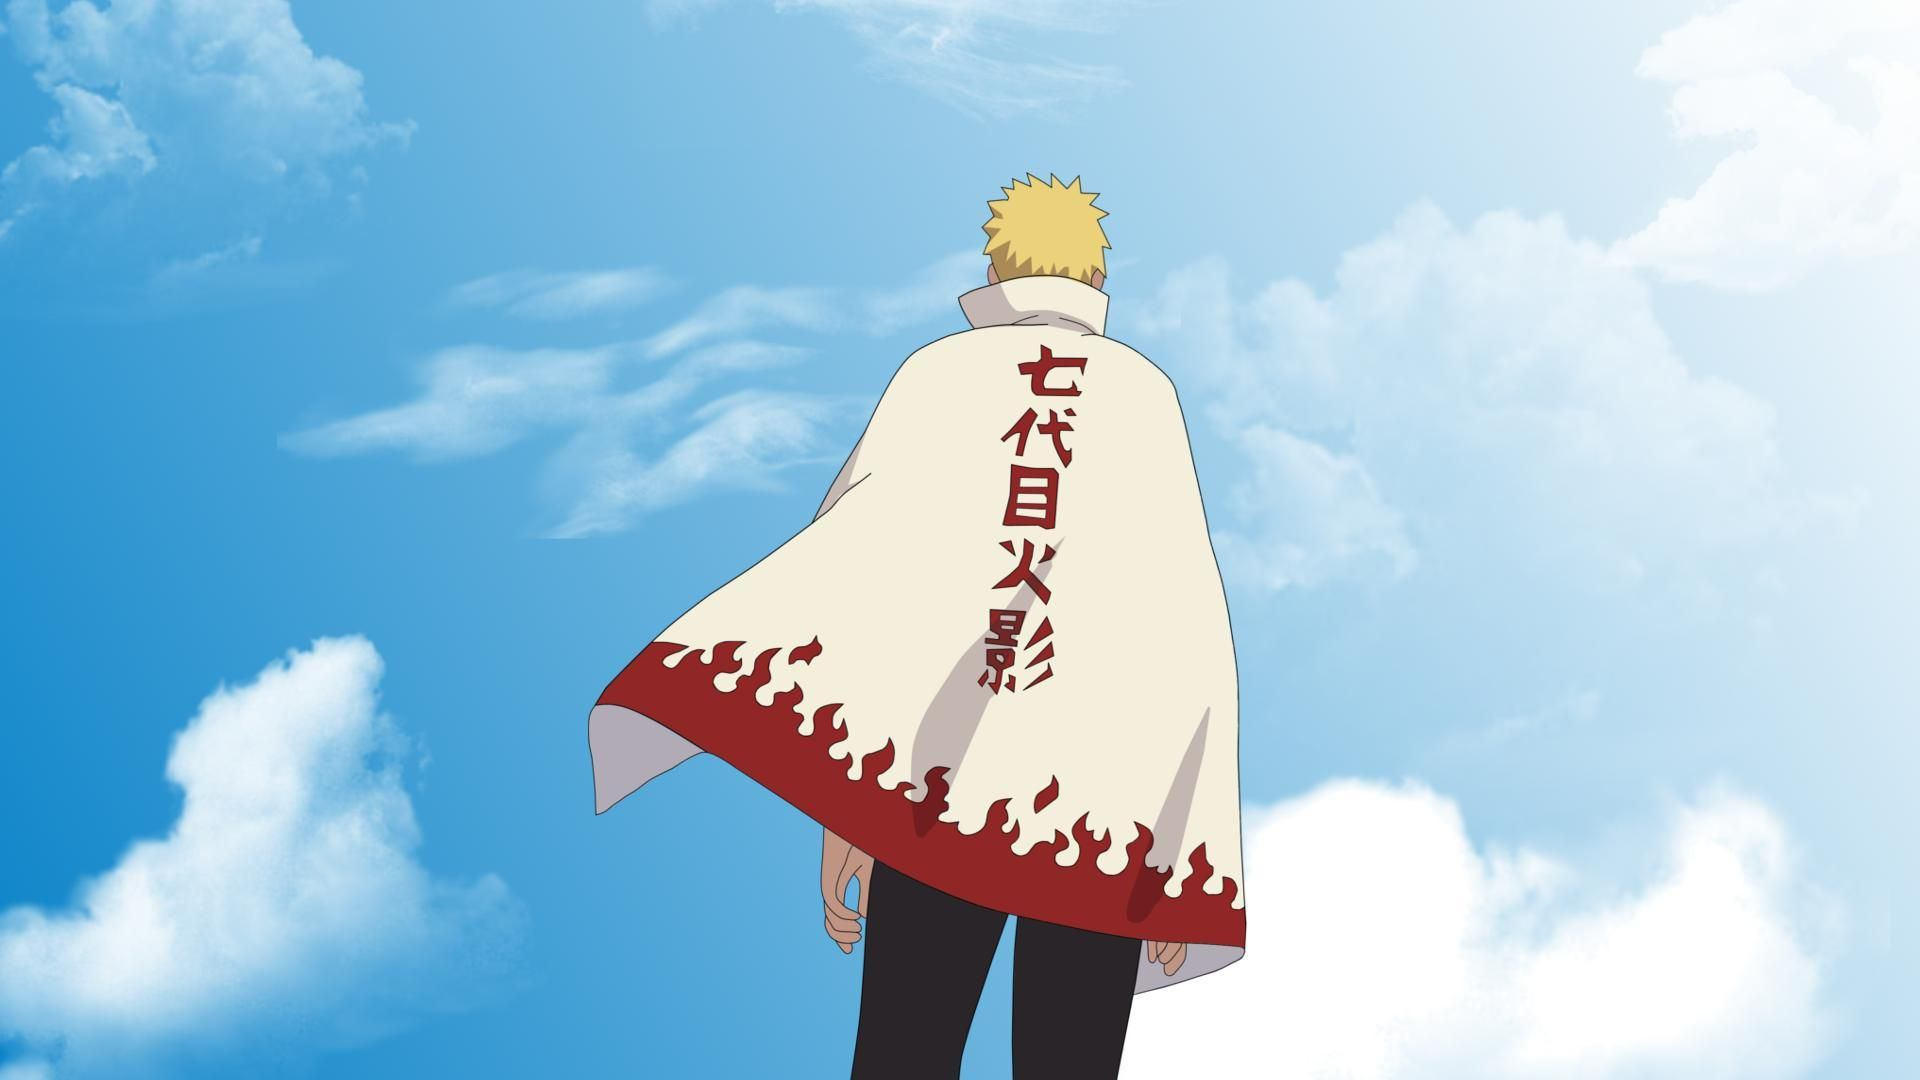 Naruto Hokage Wallpaper By Hd Wallpapers Daily With Images